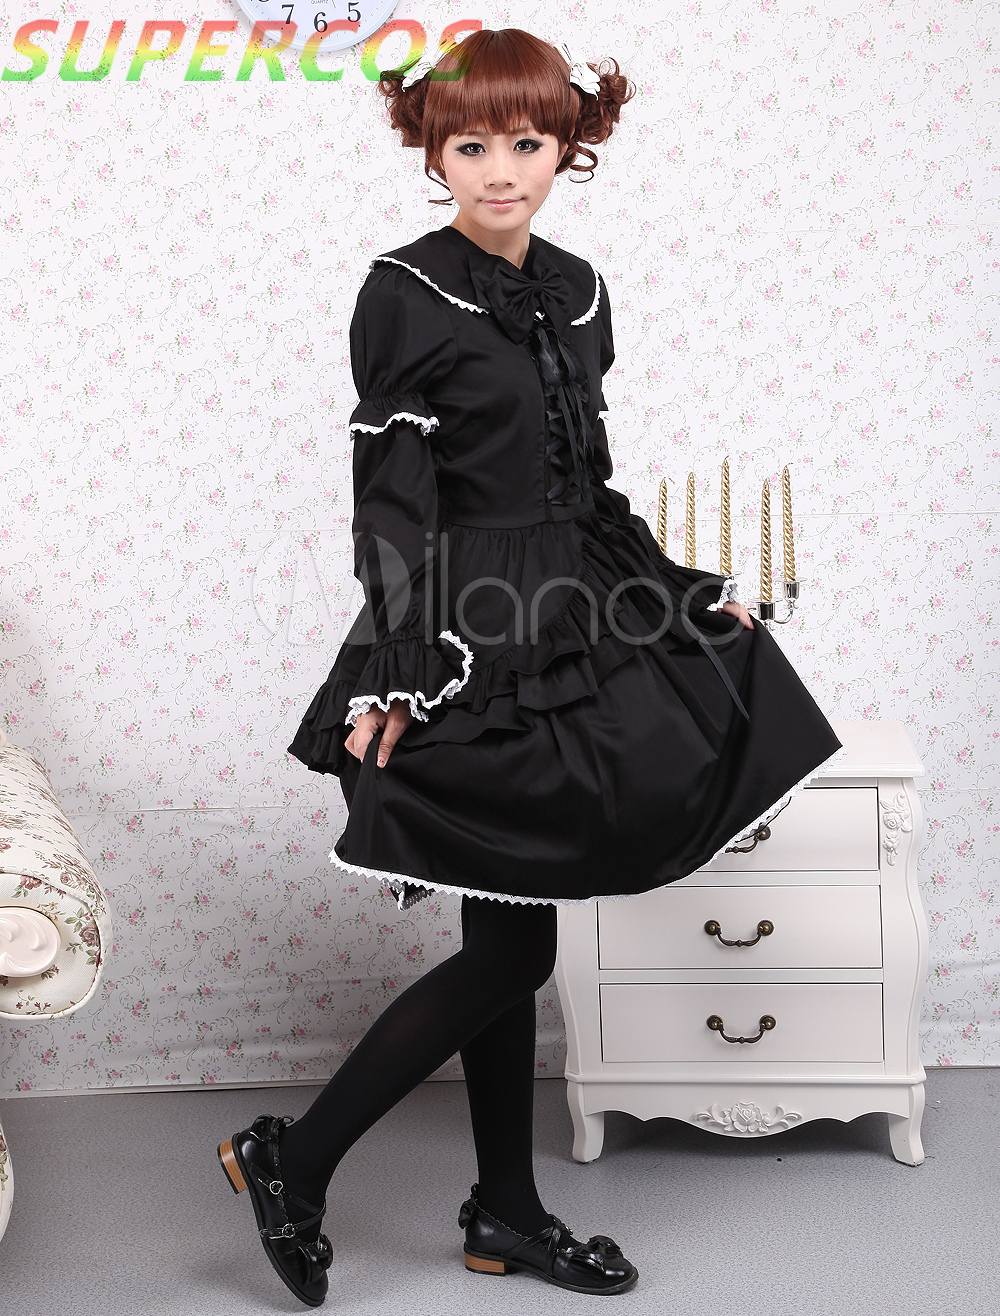 Free shipping! New Arrivals! High Quality! Cotton Black Long Sleeves Gothic Lolita Dress